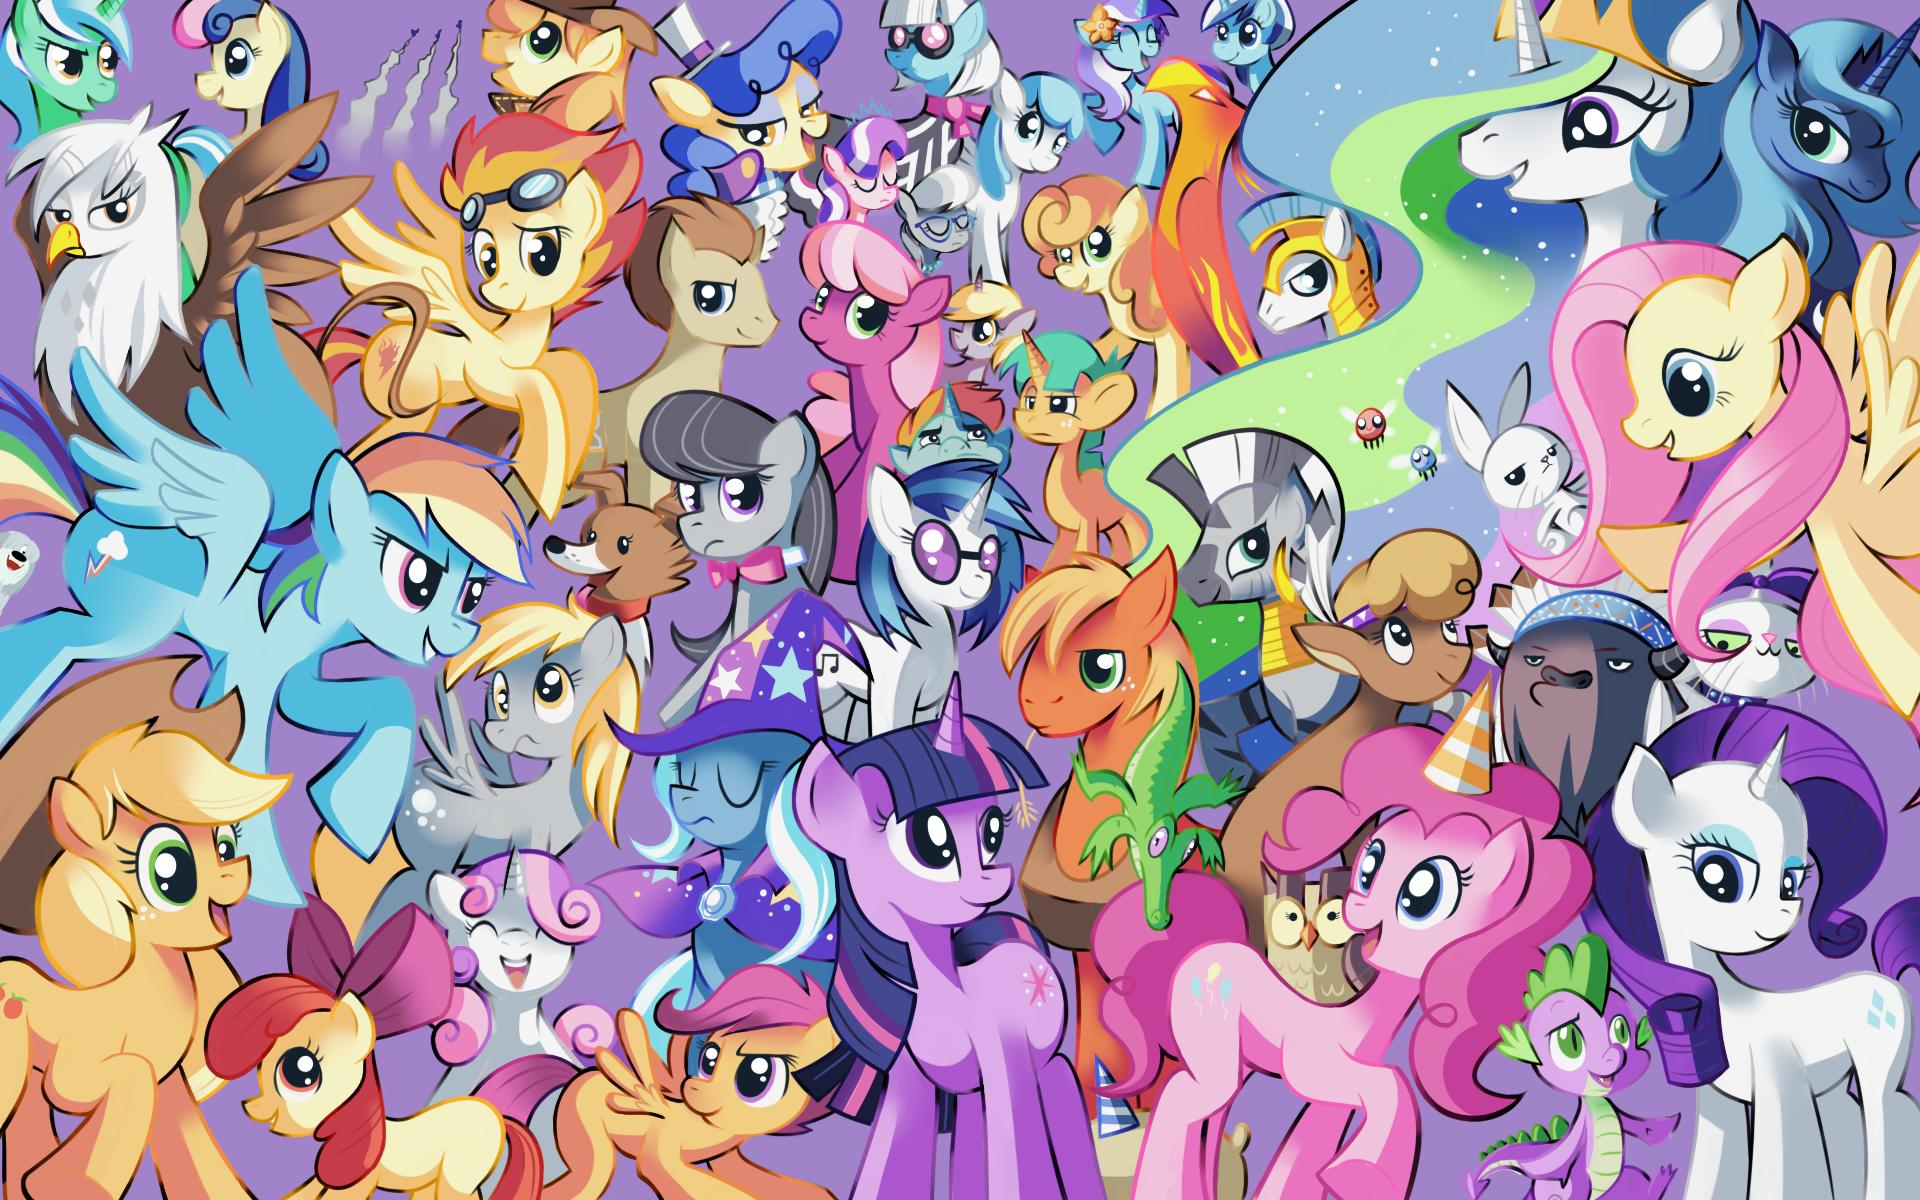 Mlp Wallpaper Hd Posted By Sarah Sellers